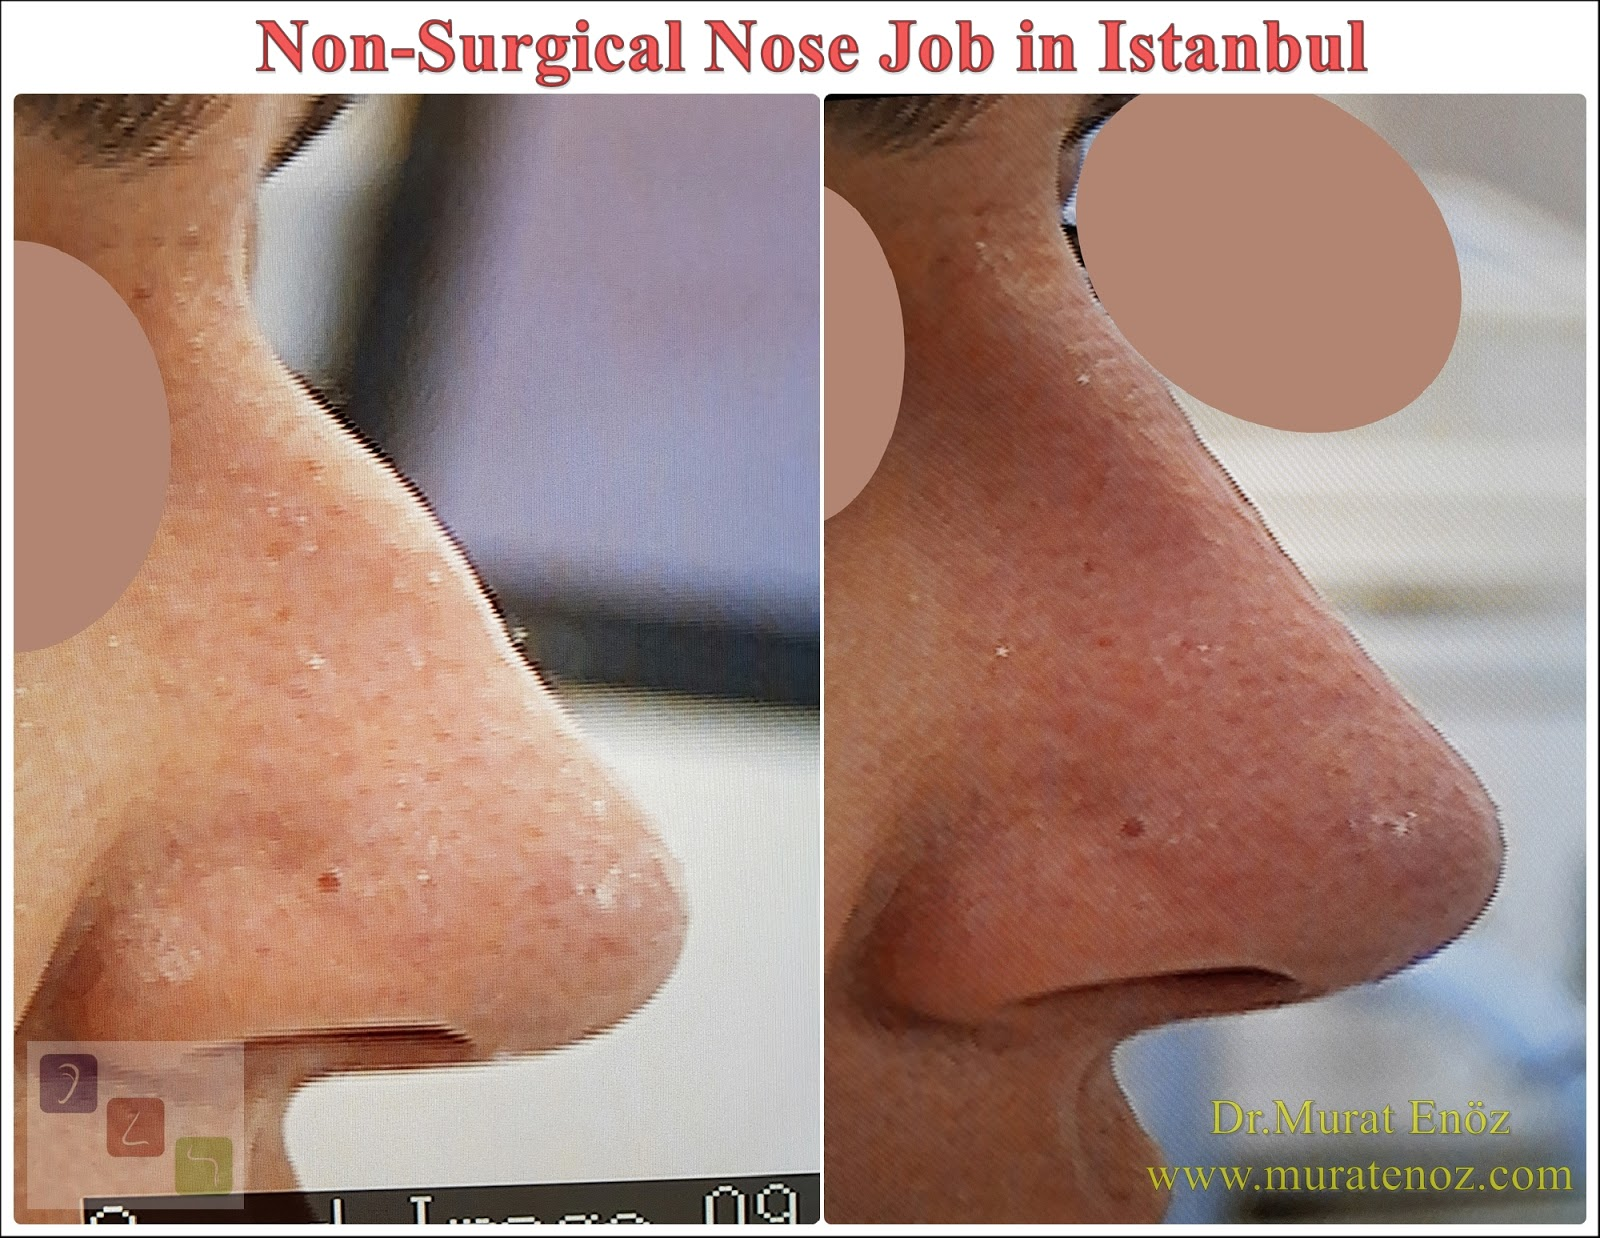 Cost of Non-Surgical Nose Job in Istanbul